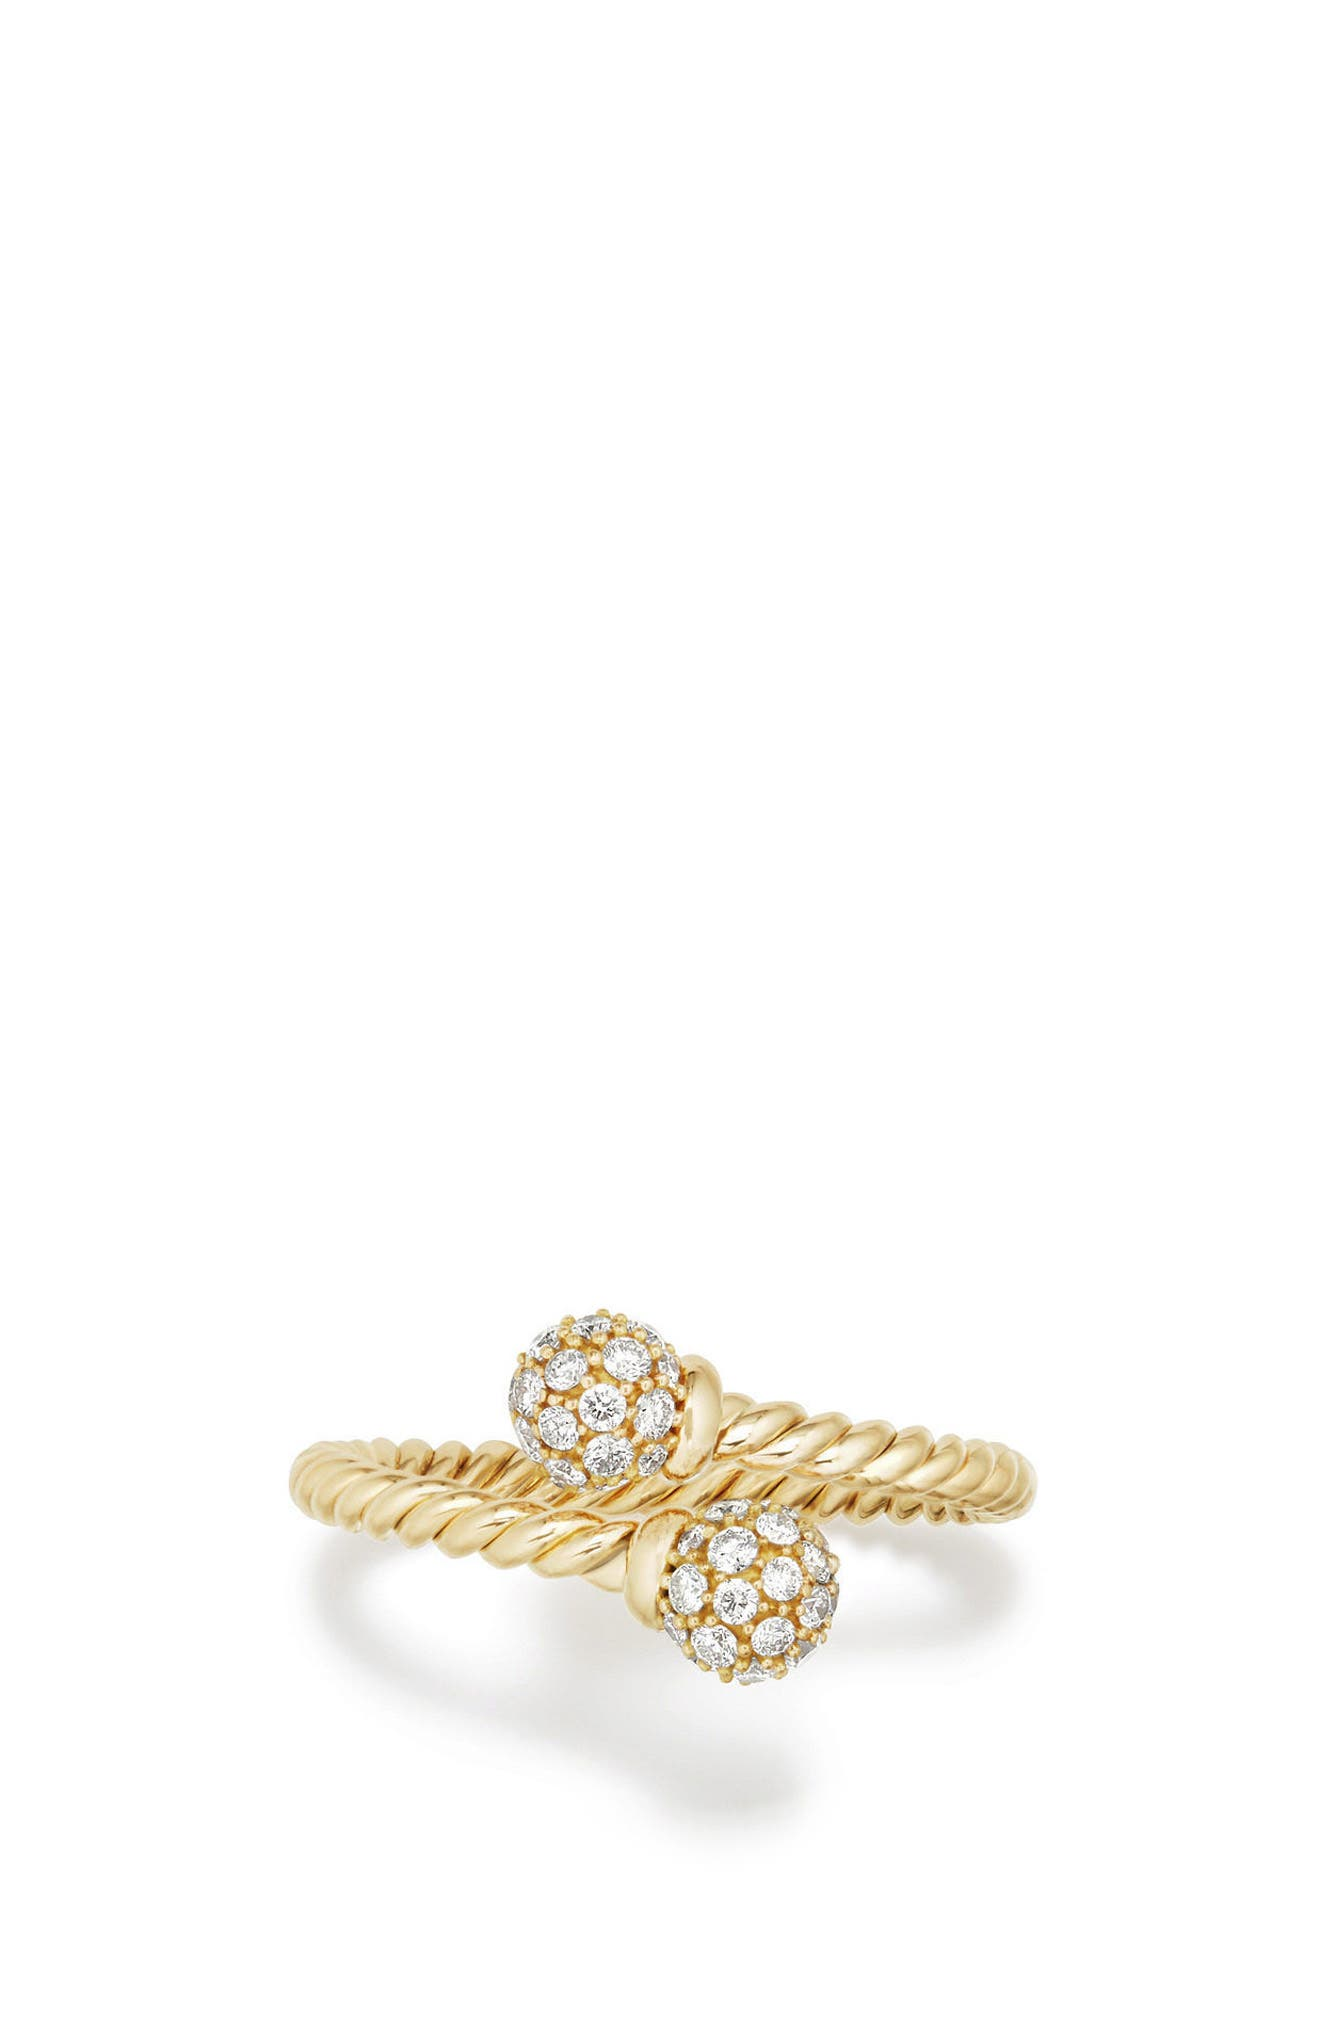 Petite Solari Bypass Ring with Diamonds in 18K Gold,                         Main,                         color, Yellow Gold/ Diamond